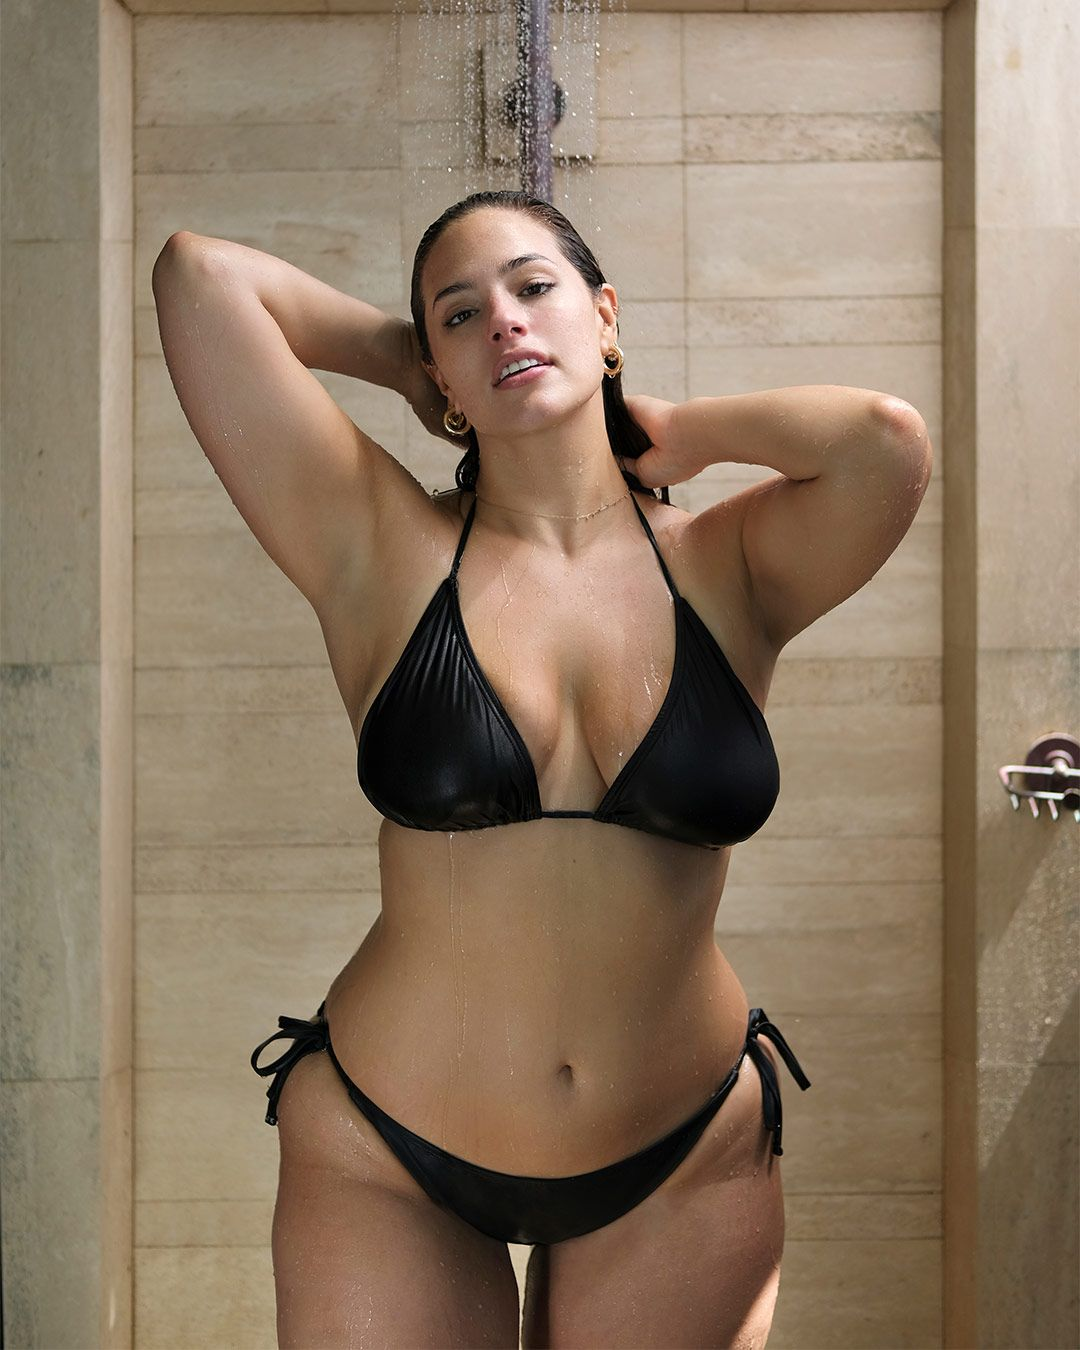 a52faa3c155 Shop the new Ashley Graham Essentials Collection for sexy must-have styles  like our Icon Black Bikini.